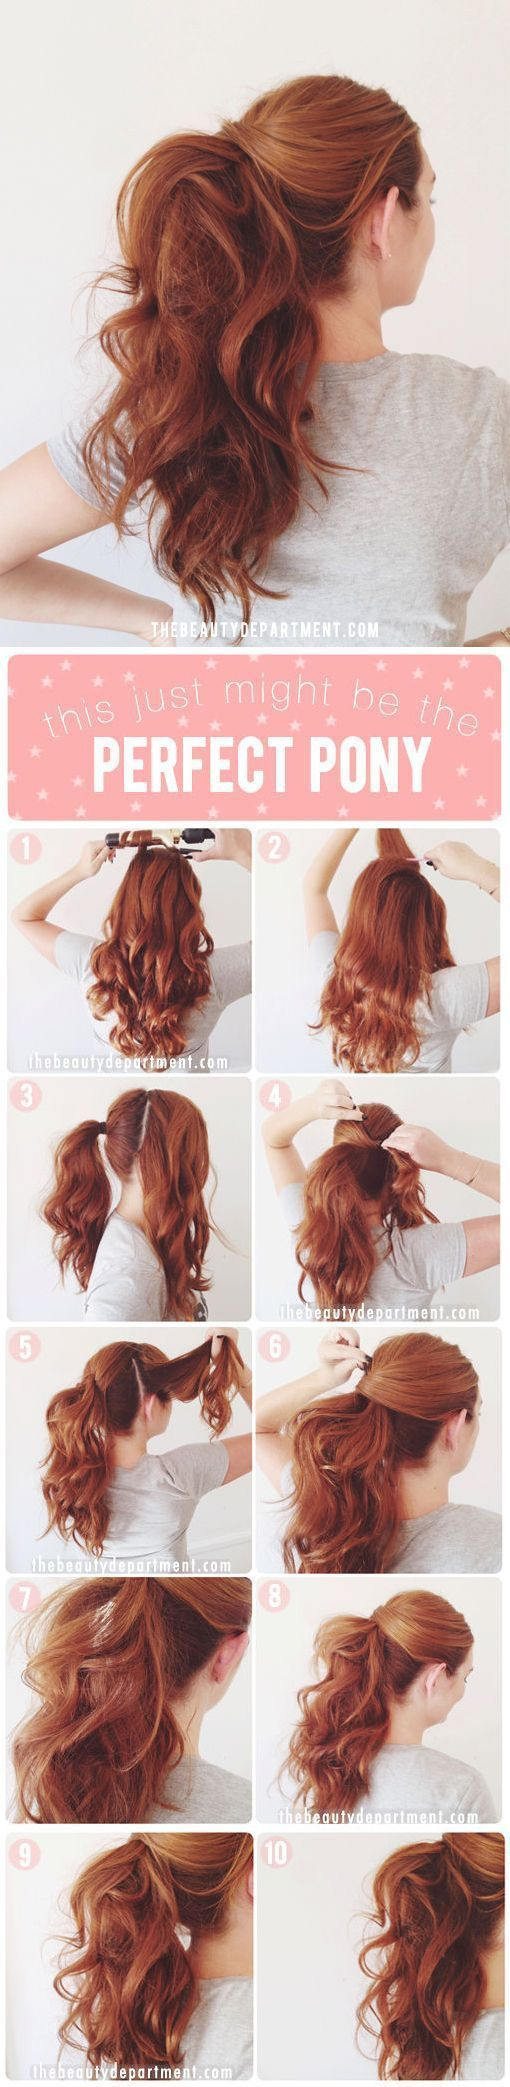 Easy half up half down hairstyles perfect pony i love this